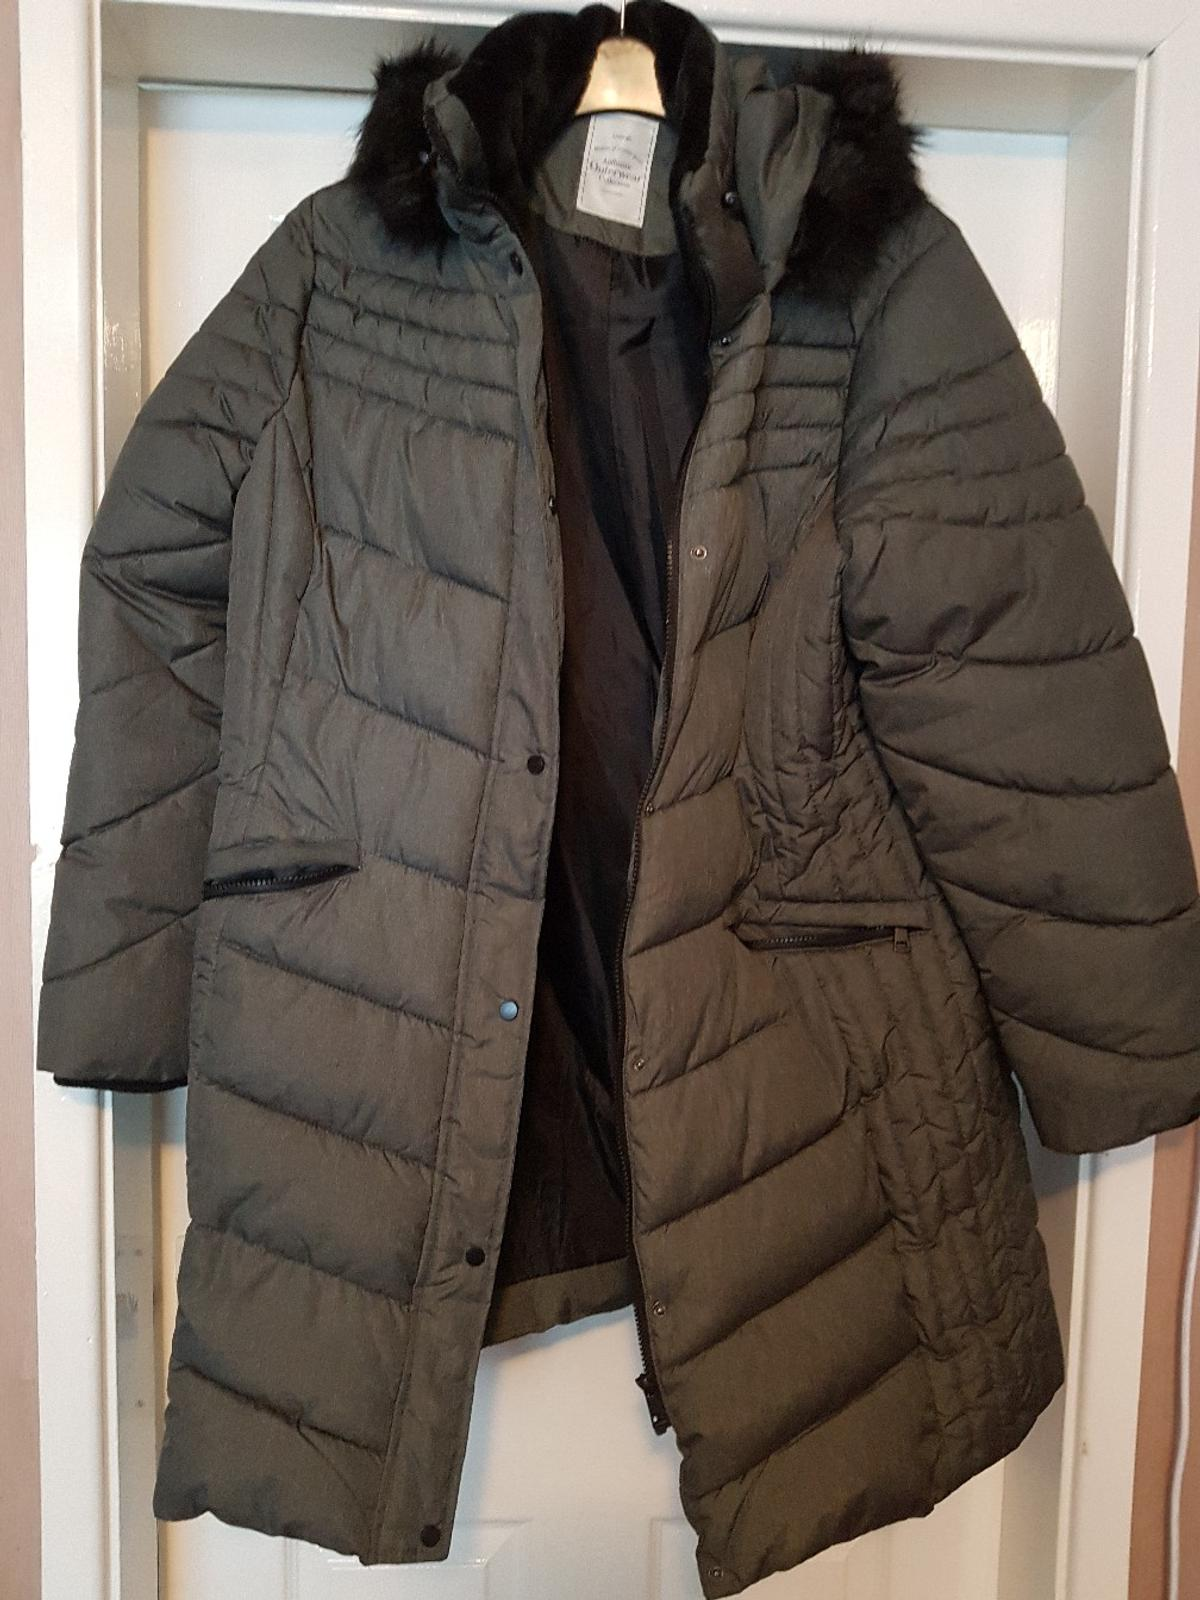 size 7 good texture performance sportswear ladies quilted winter coat